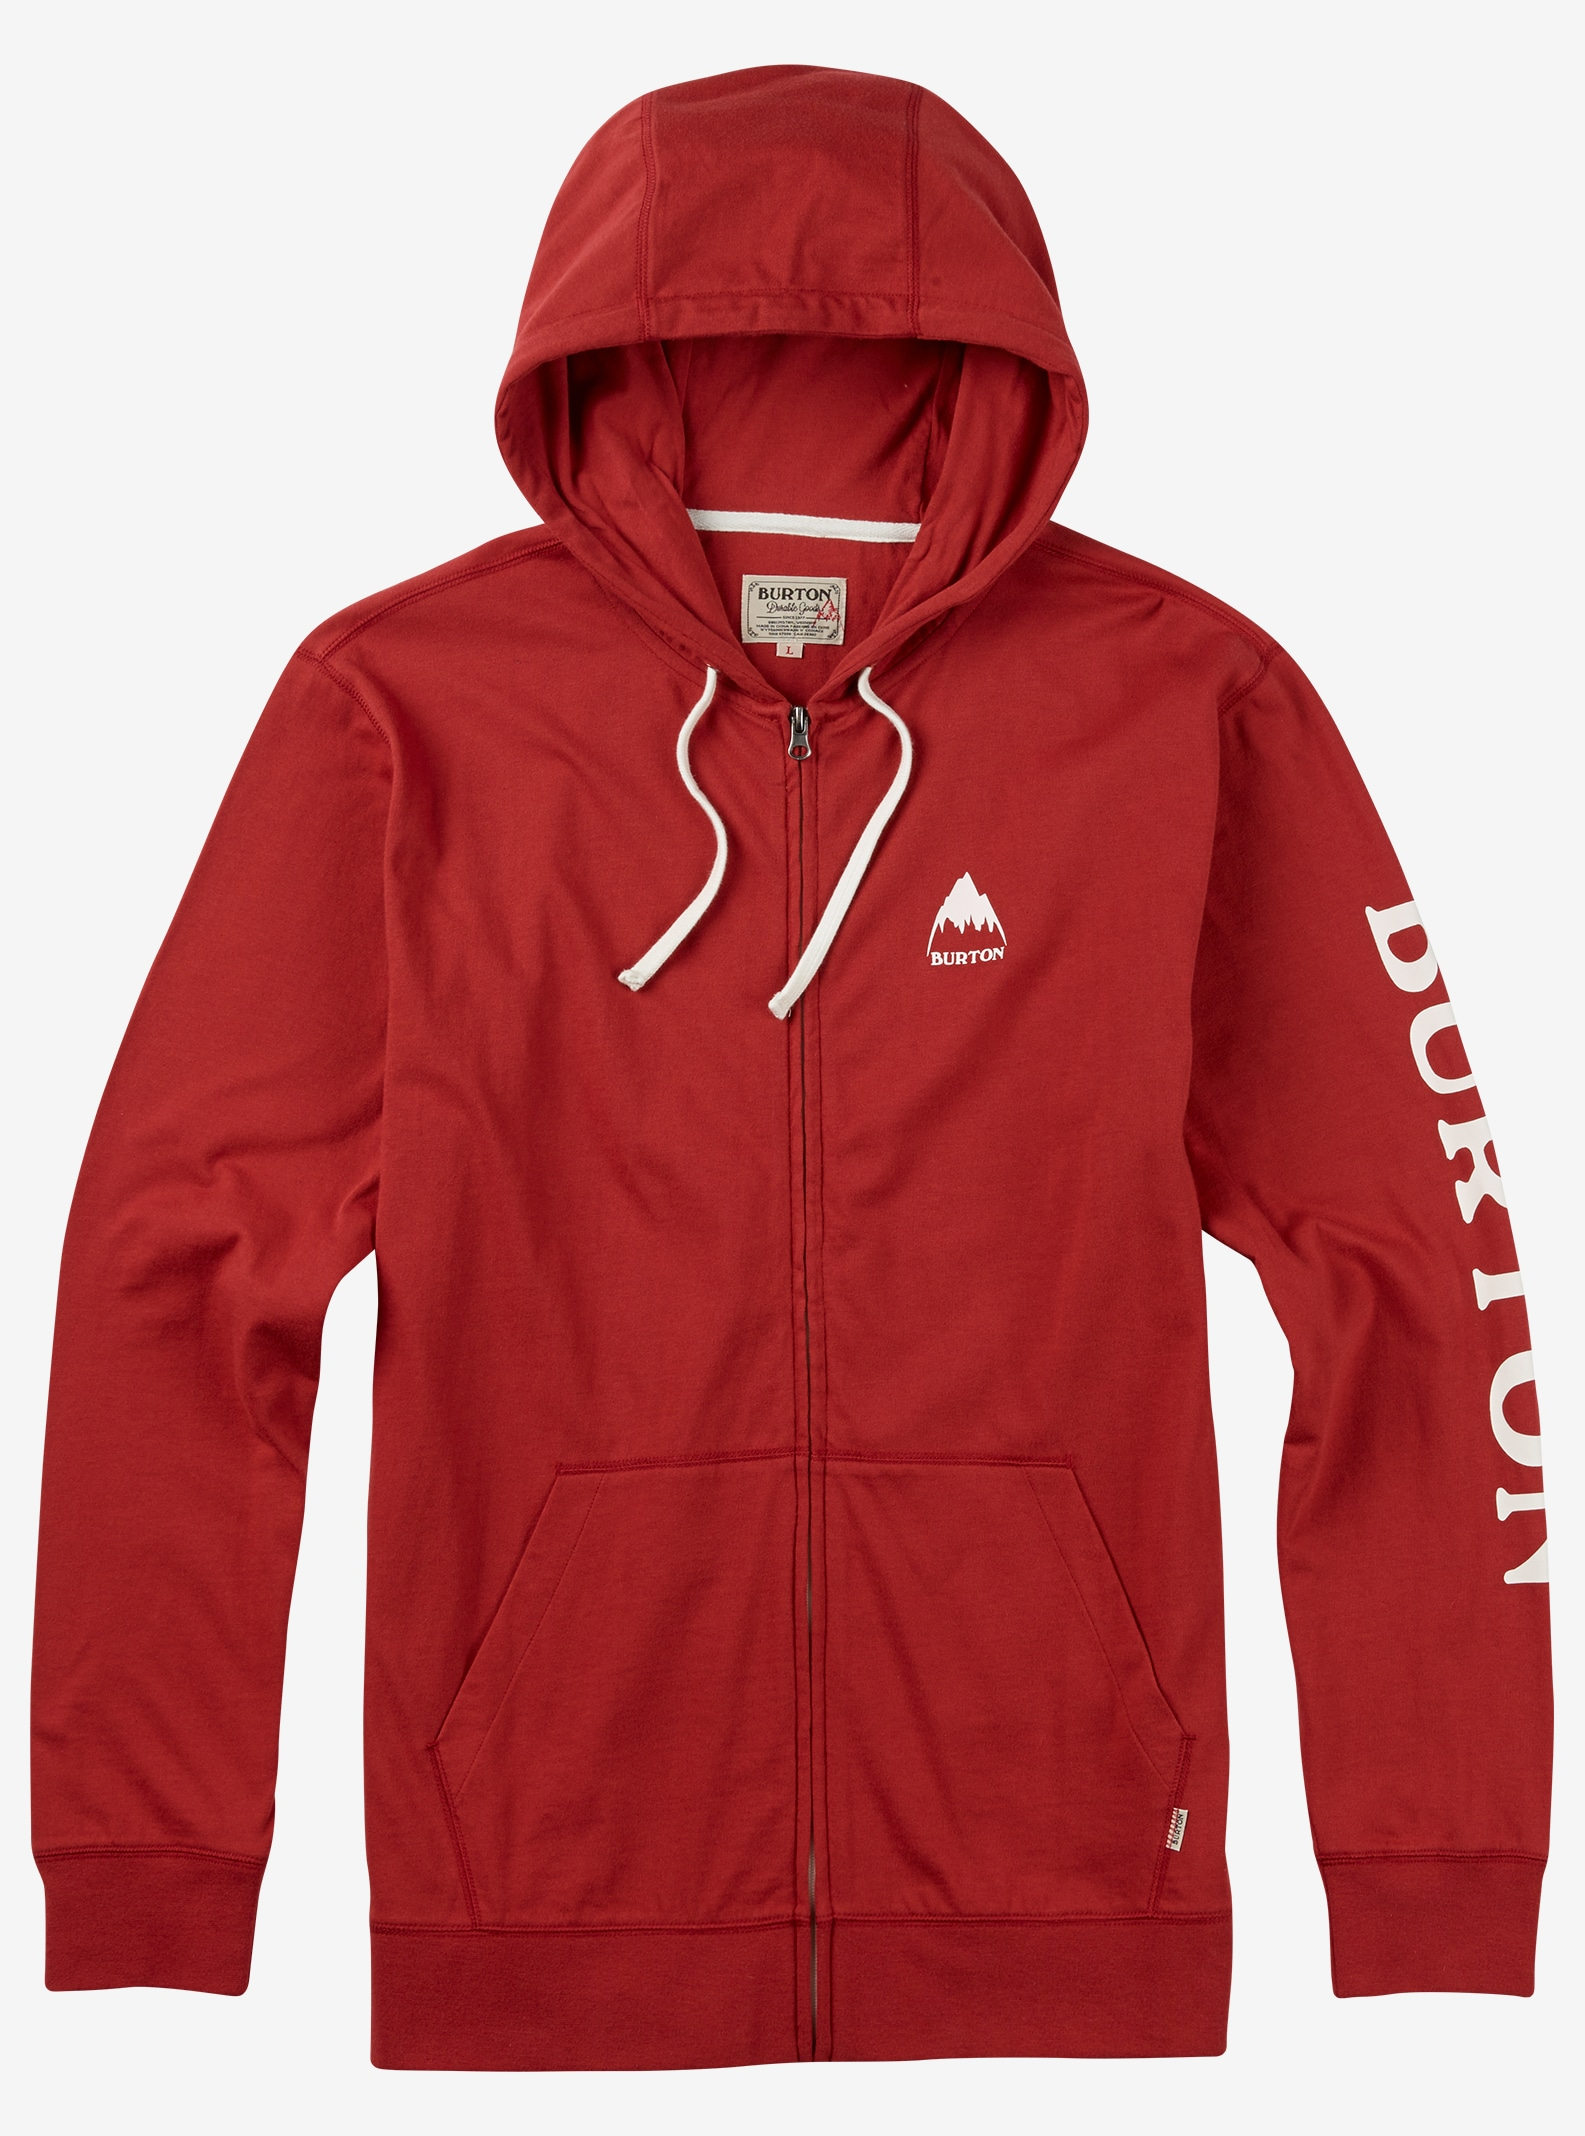 Burton Elite Full-Zip Hoodie shown in Tandori